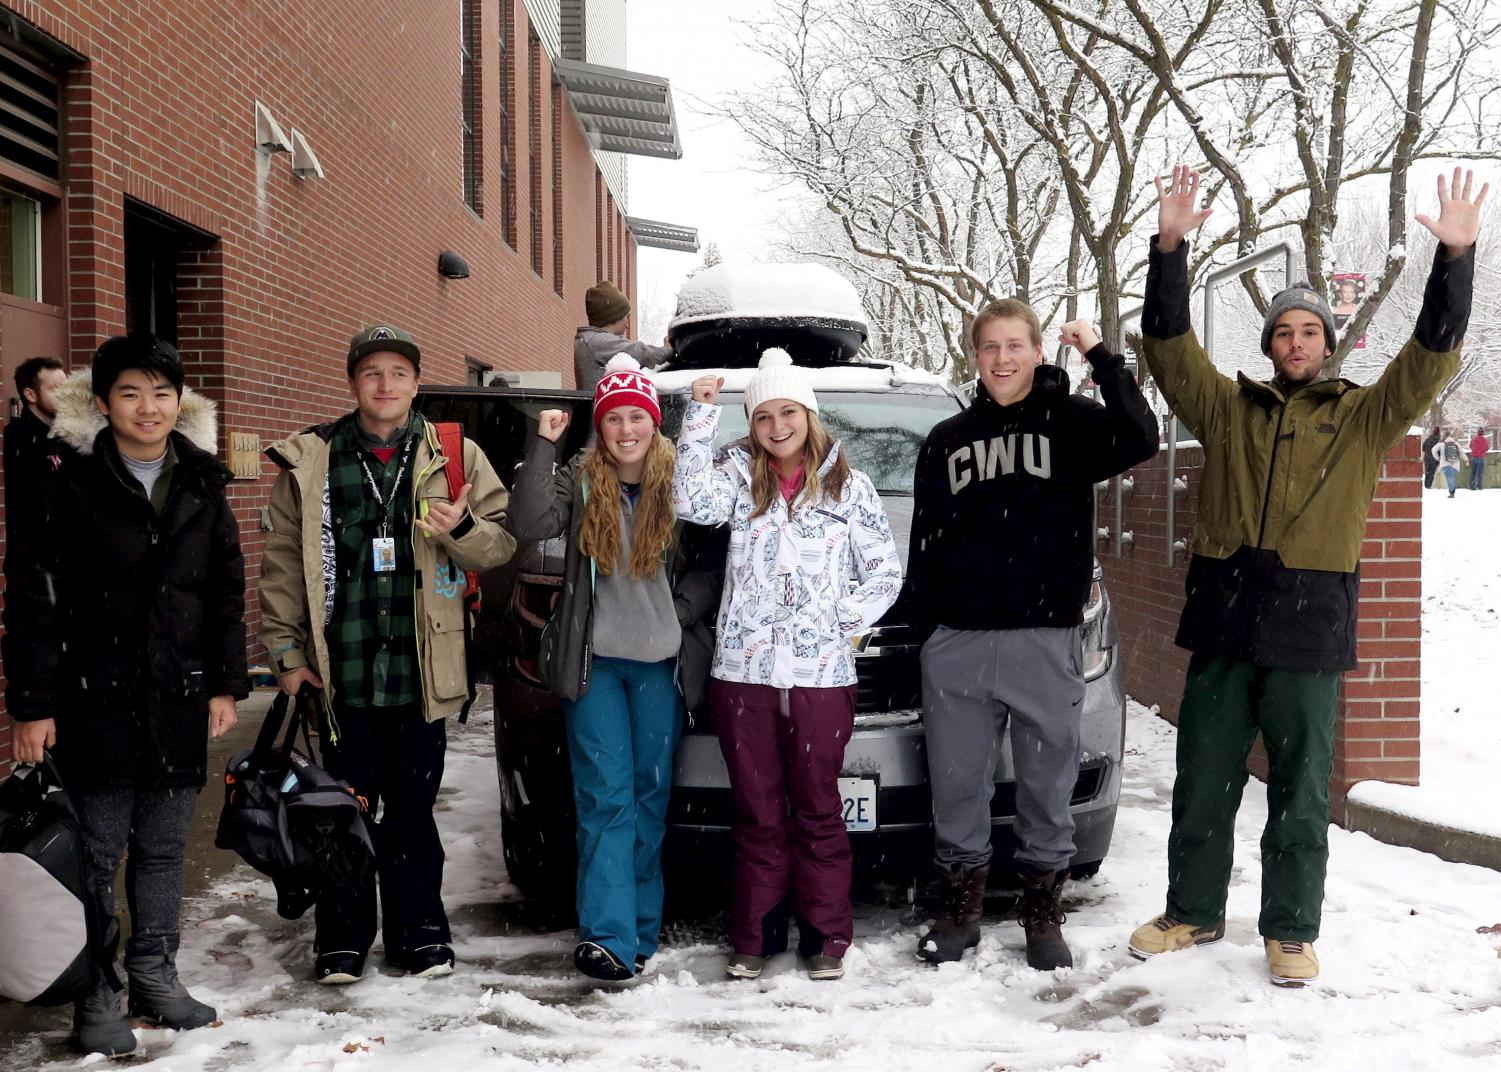 OPR ski & snowboard buses currently depart every Tuesday and are a great way for students to get some work in on the slopes. Whether you're just beginning or ready to give lessons, the OPR wants to provide this experience to anybody who is interested.